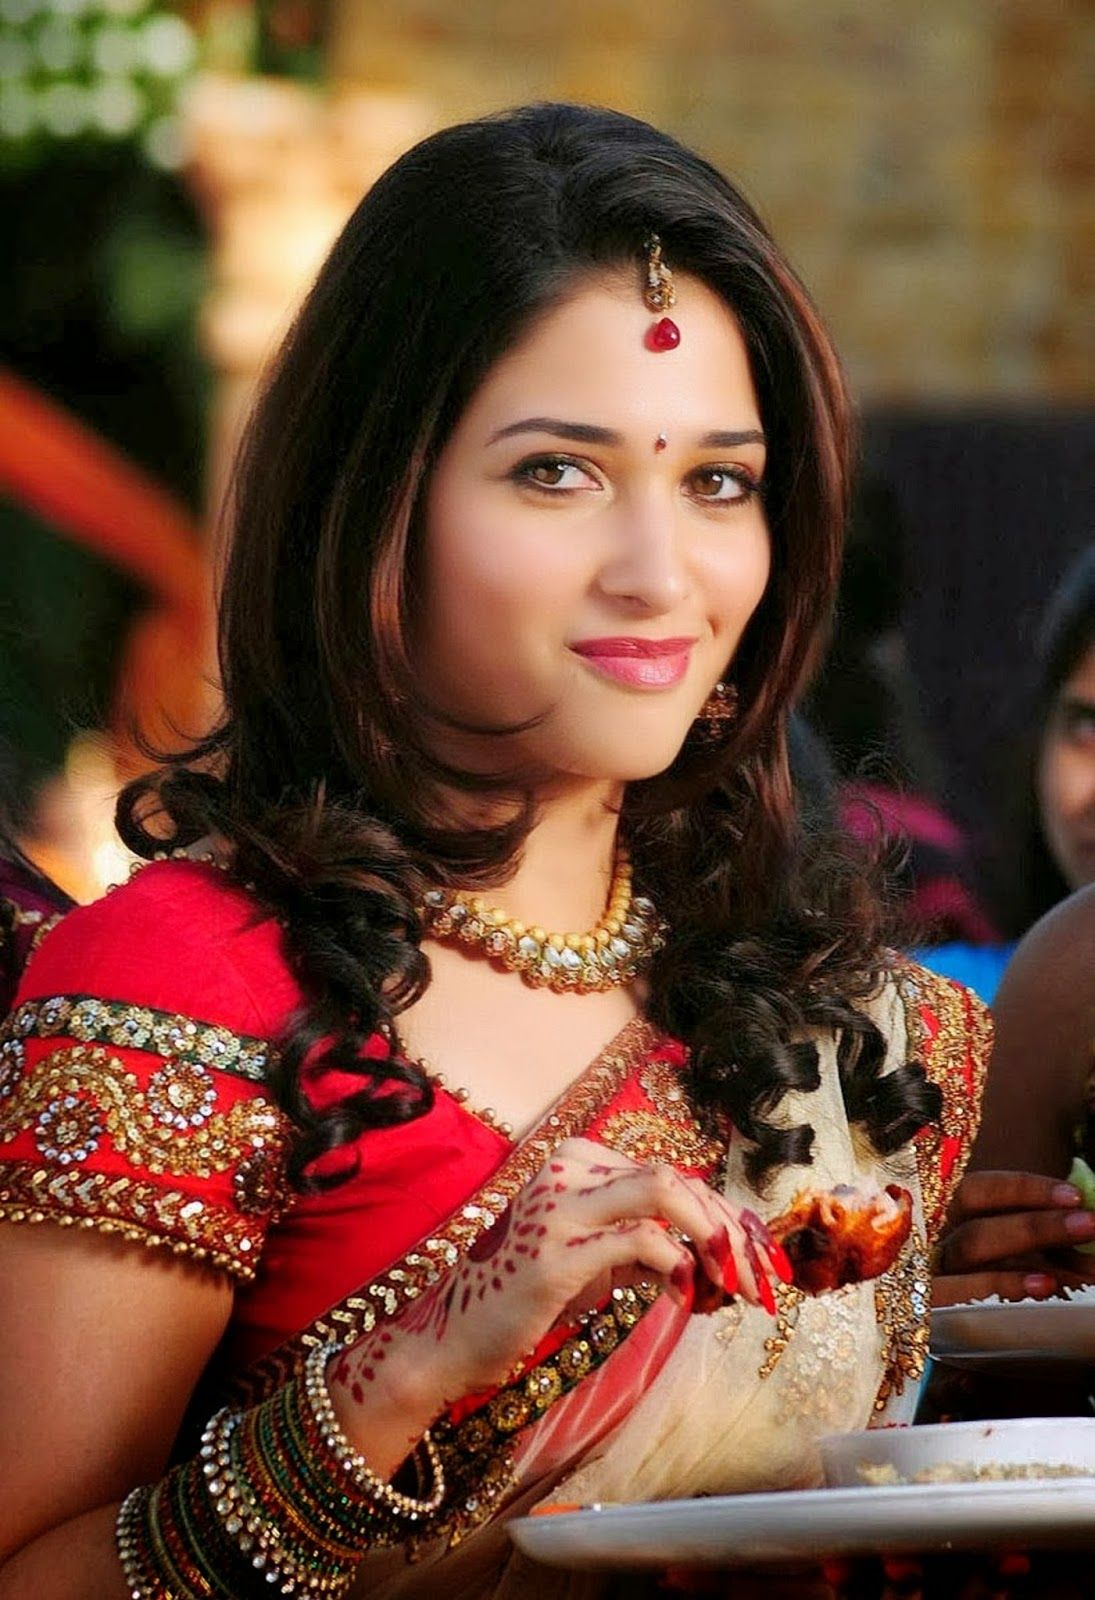 Download Tamannna Bhatia Hd Wallpapers  Tamanna Bhatia Hd -4225